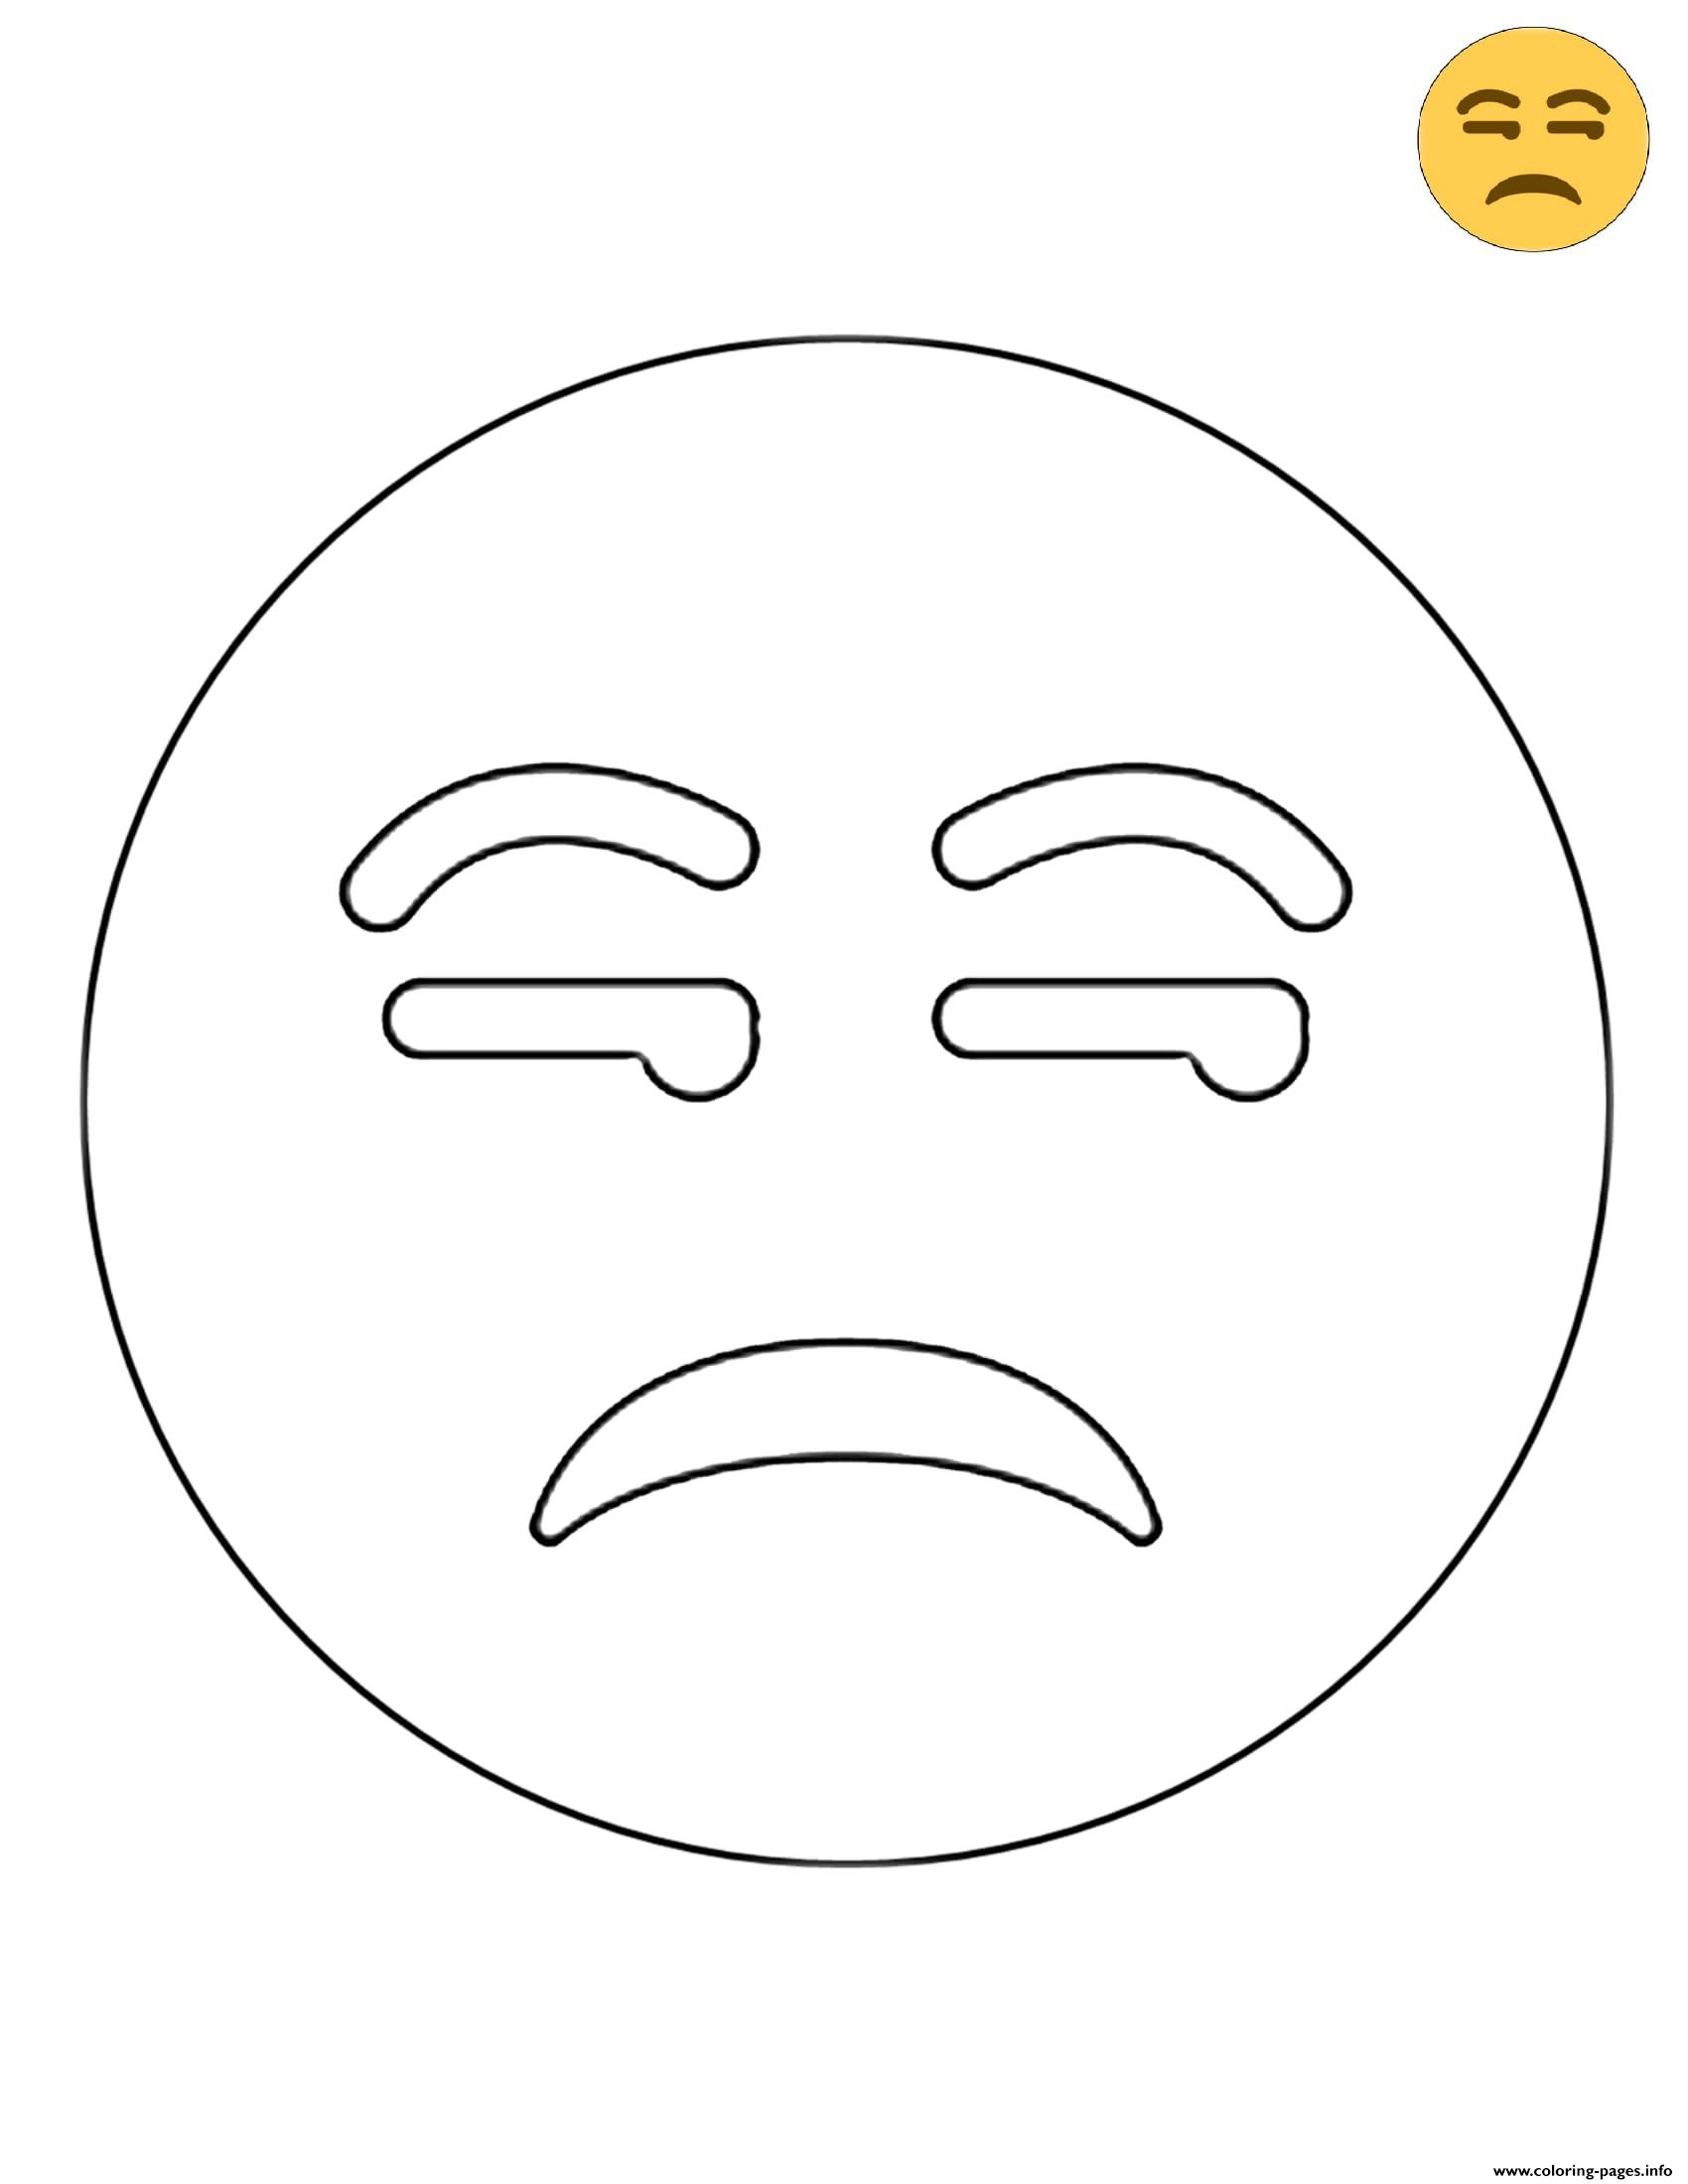 Twitter Unamused Face Emoji coloring pages